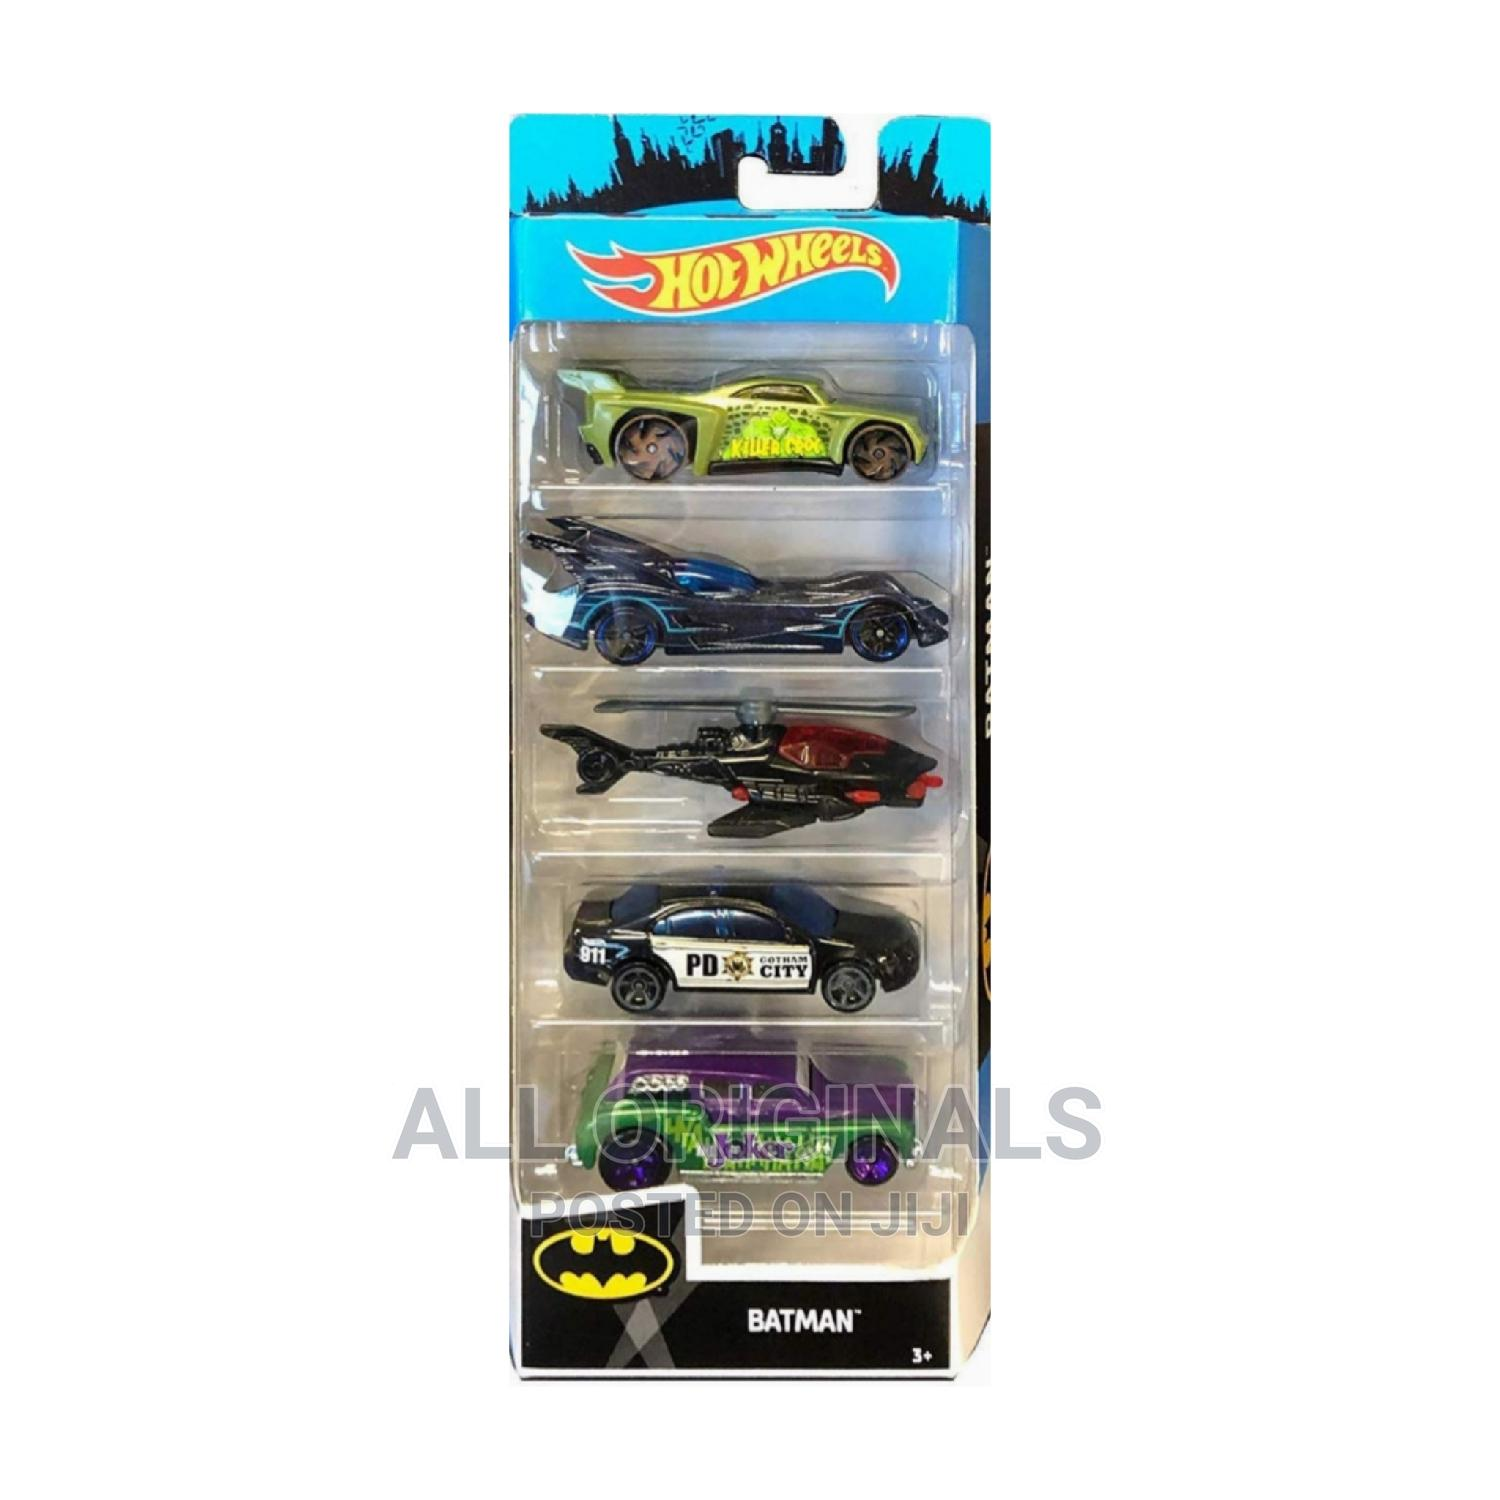 Archive: Kids 5 Hot Wheels Toy Cars